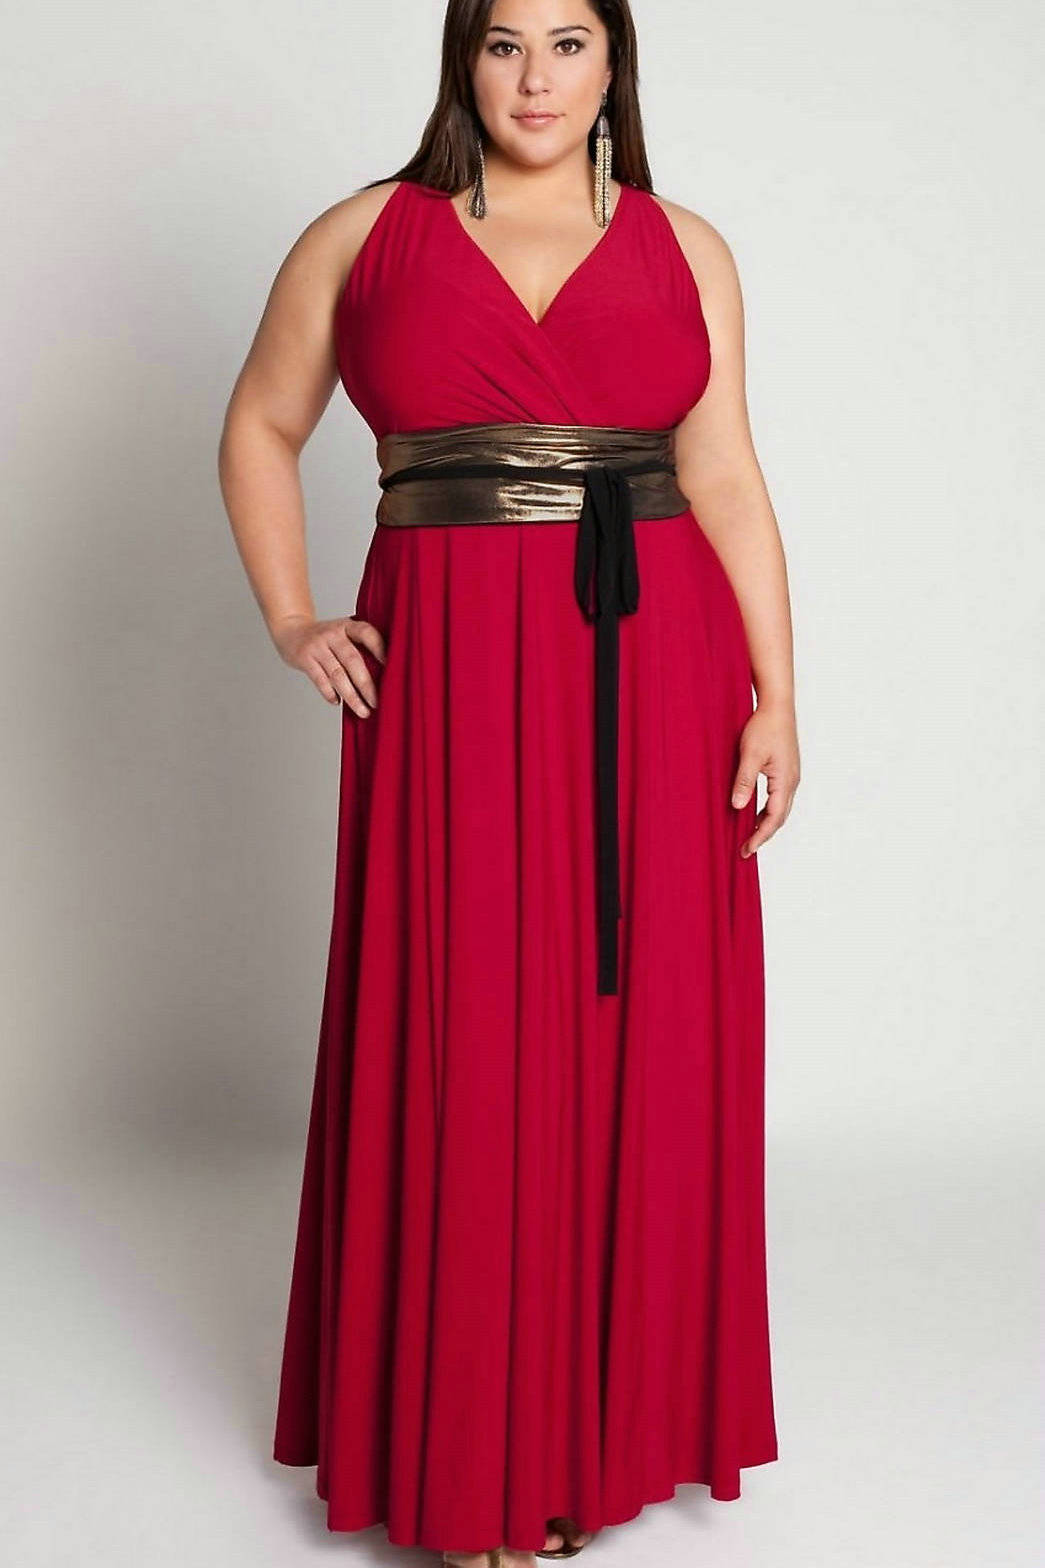 JCPenney Plus Size Formal Dresses | Dress images